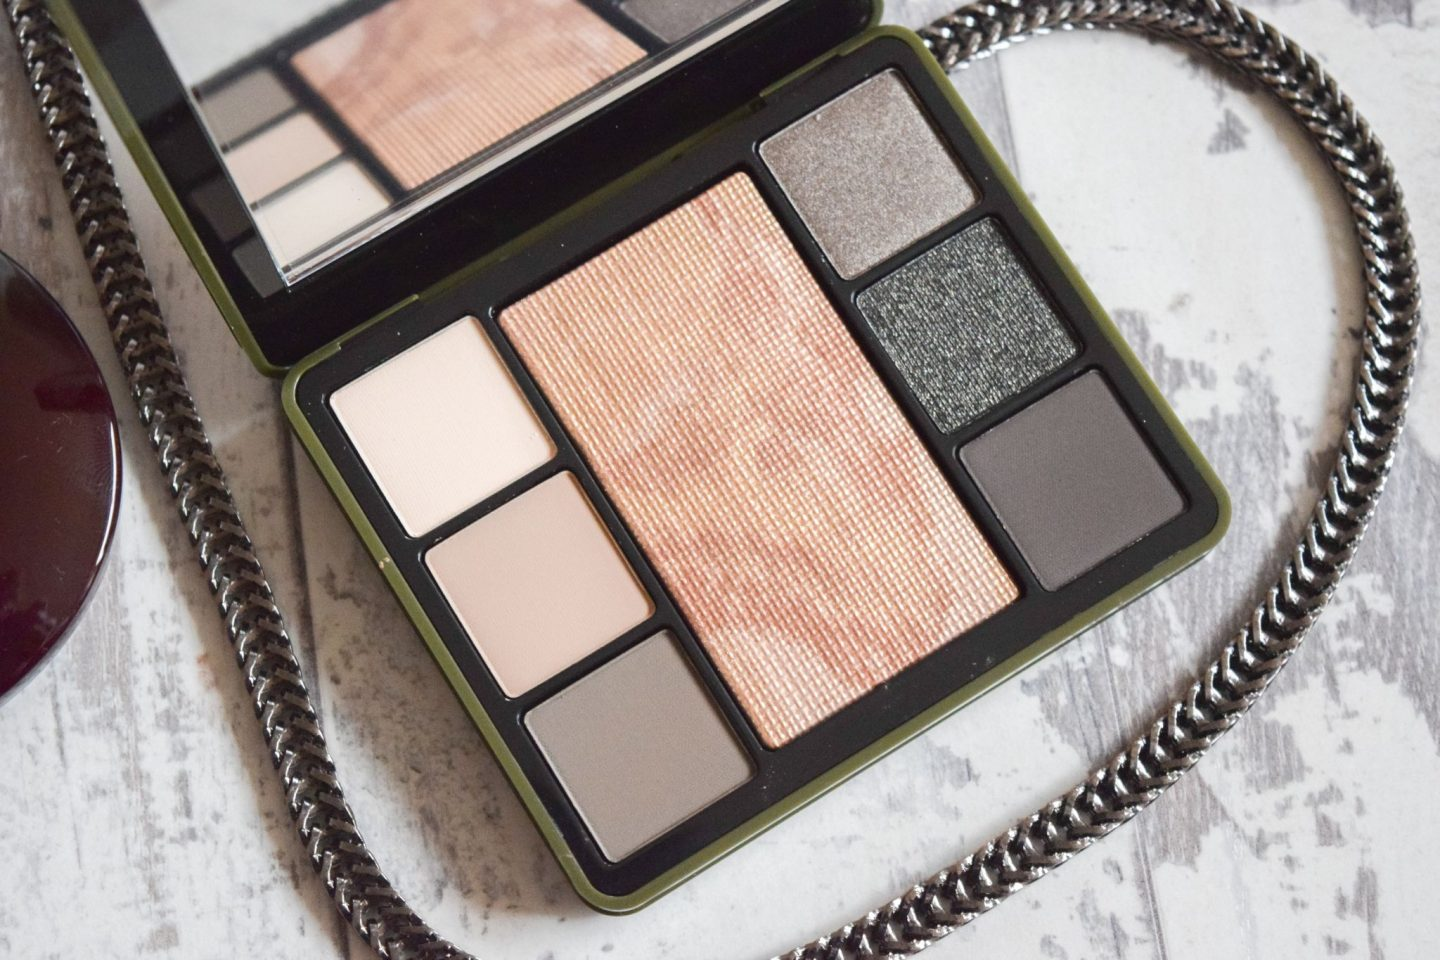 Bobbi Brown LE Camo Luxe Eye and Cheek Palette